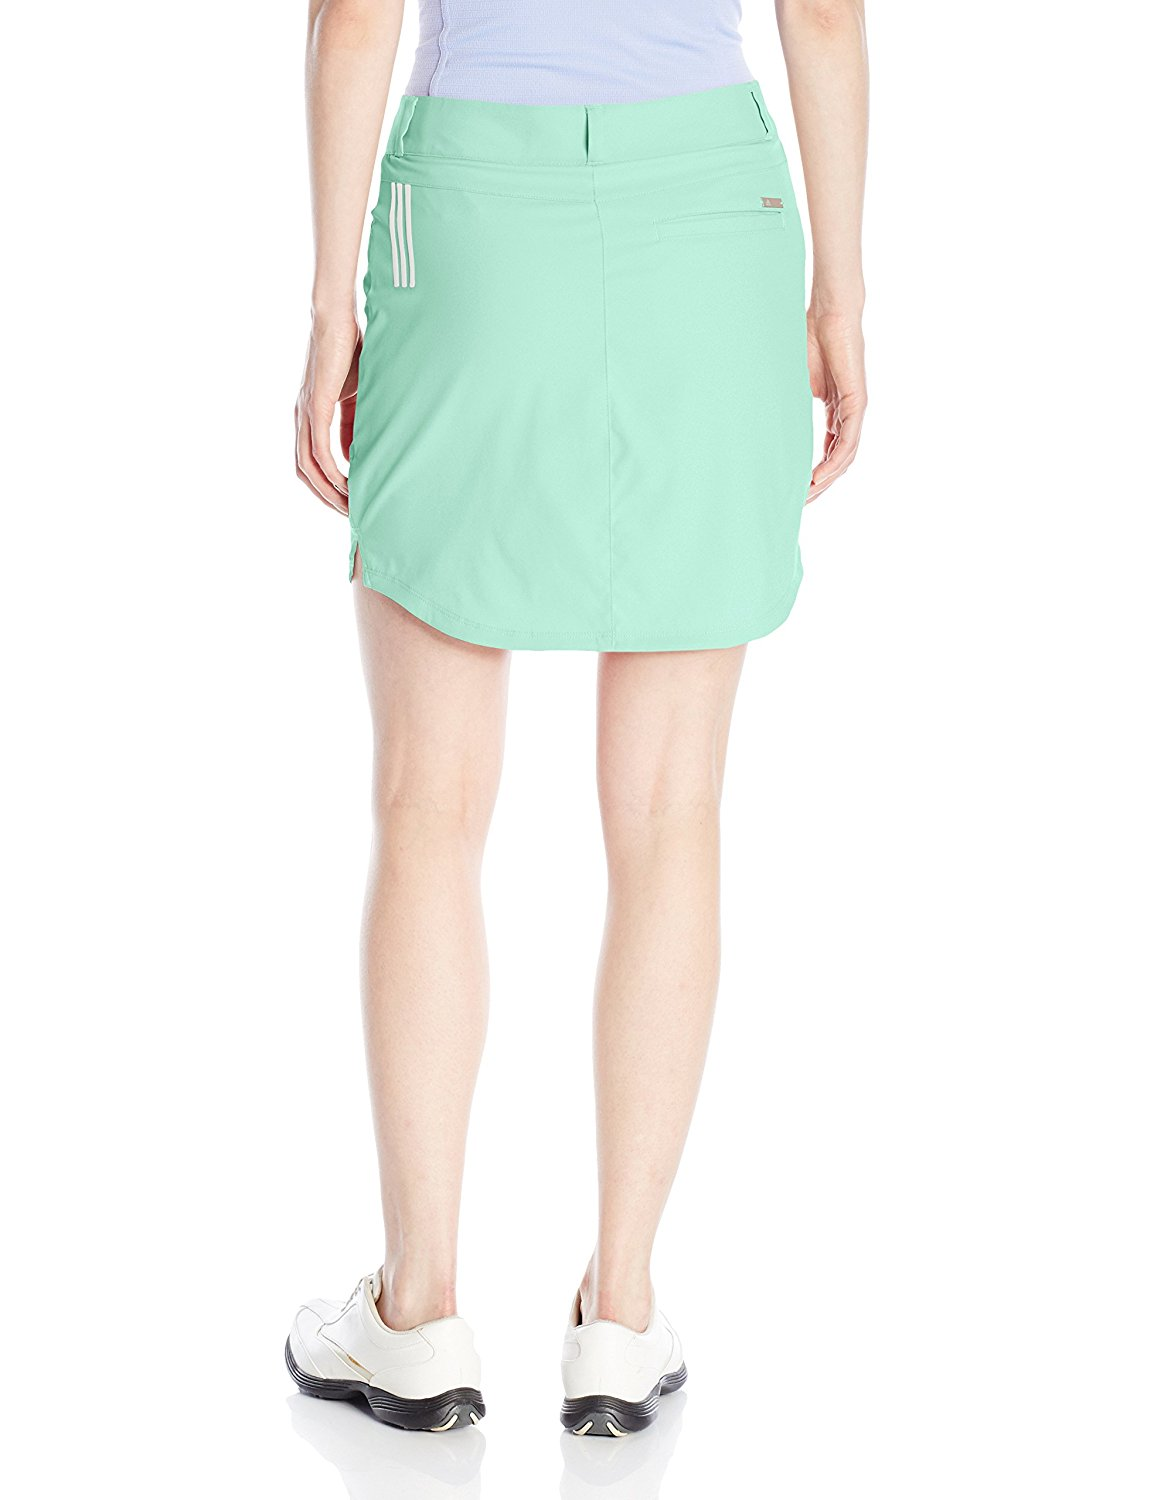 Adidas-Golf-Women-039-s-Essentials-3-Stripes-Skort-Pick-Size-amp-Color thumbnail 19